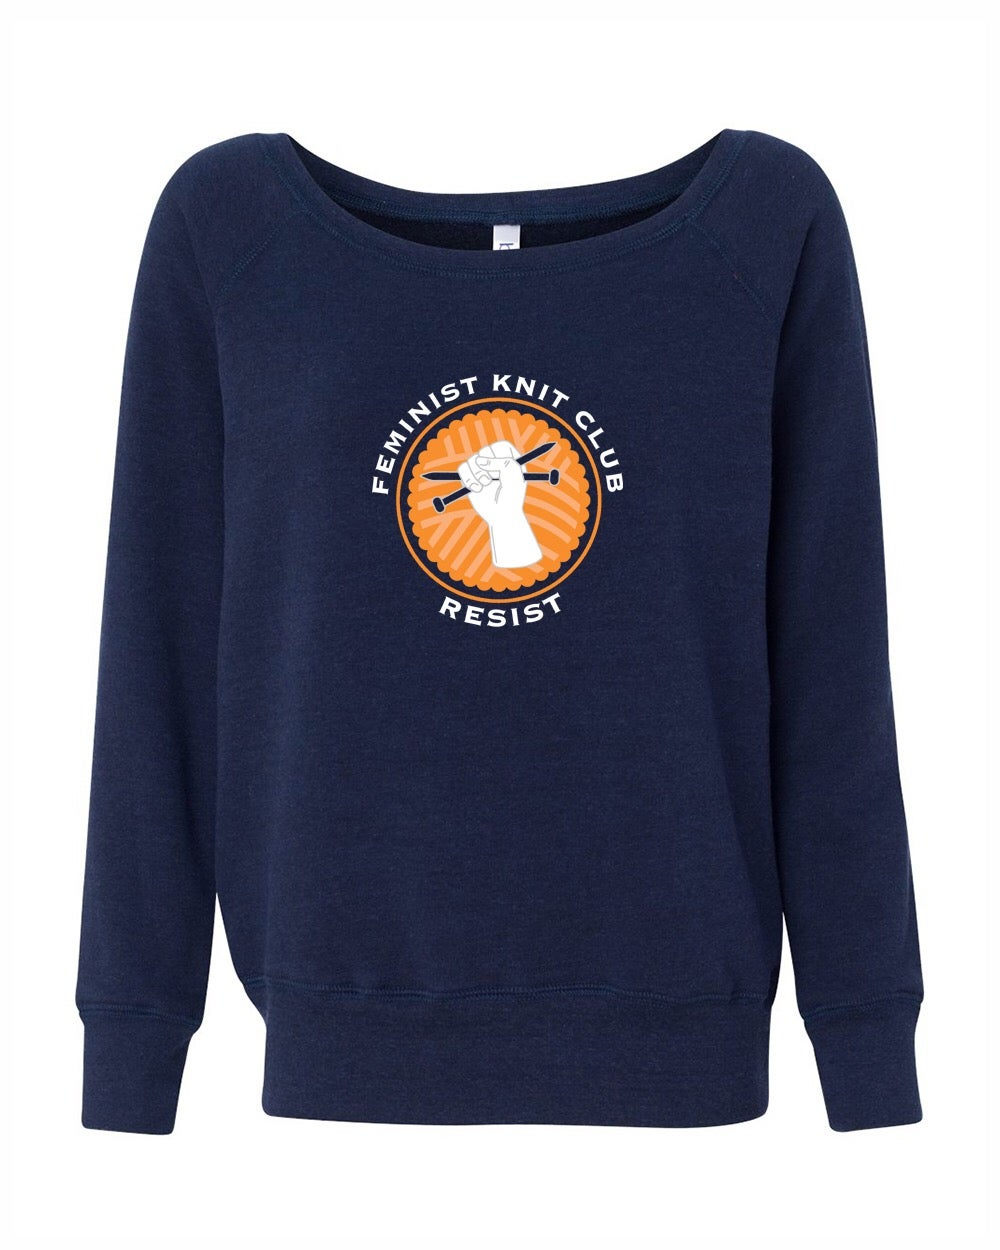 Image of Feminist Knit Club Wide Neck Sweatshirt